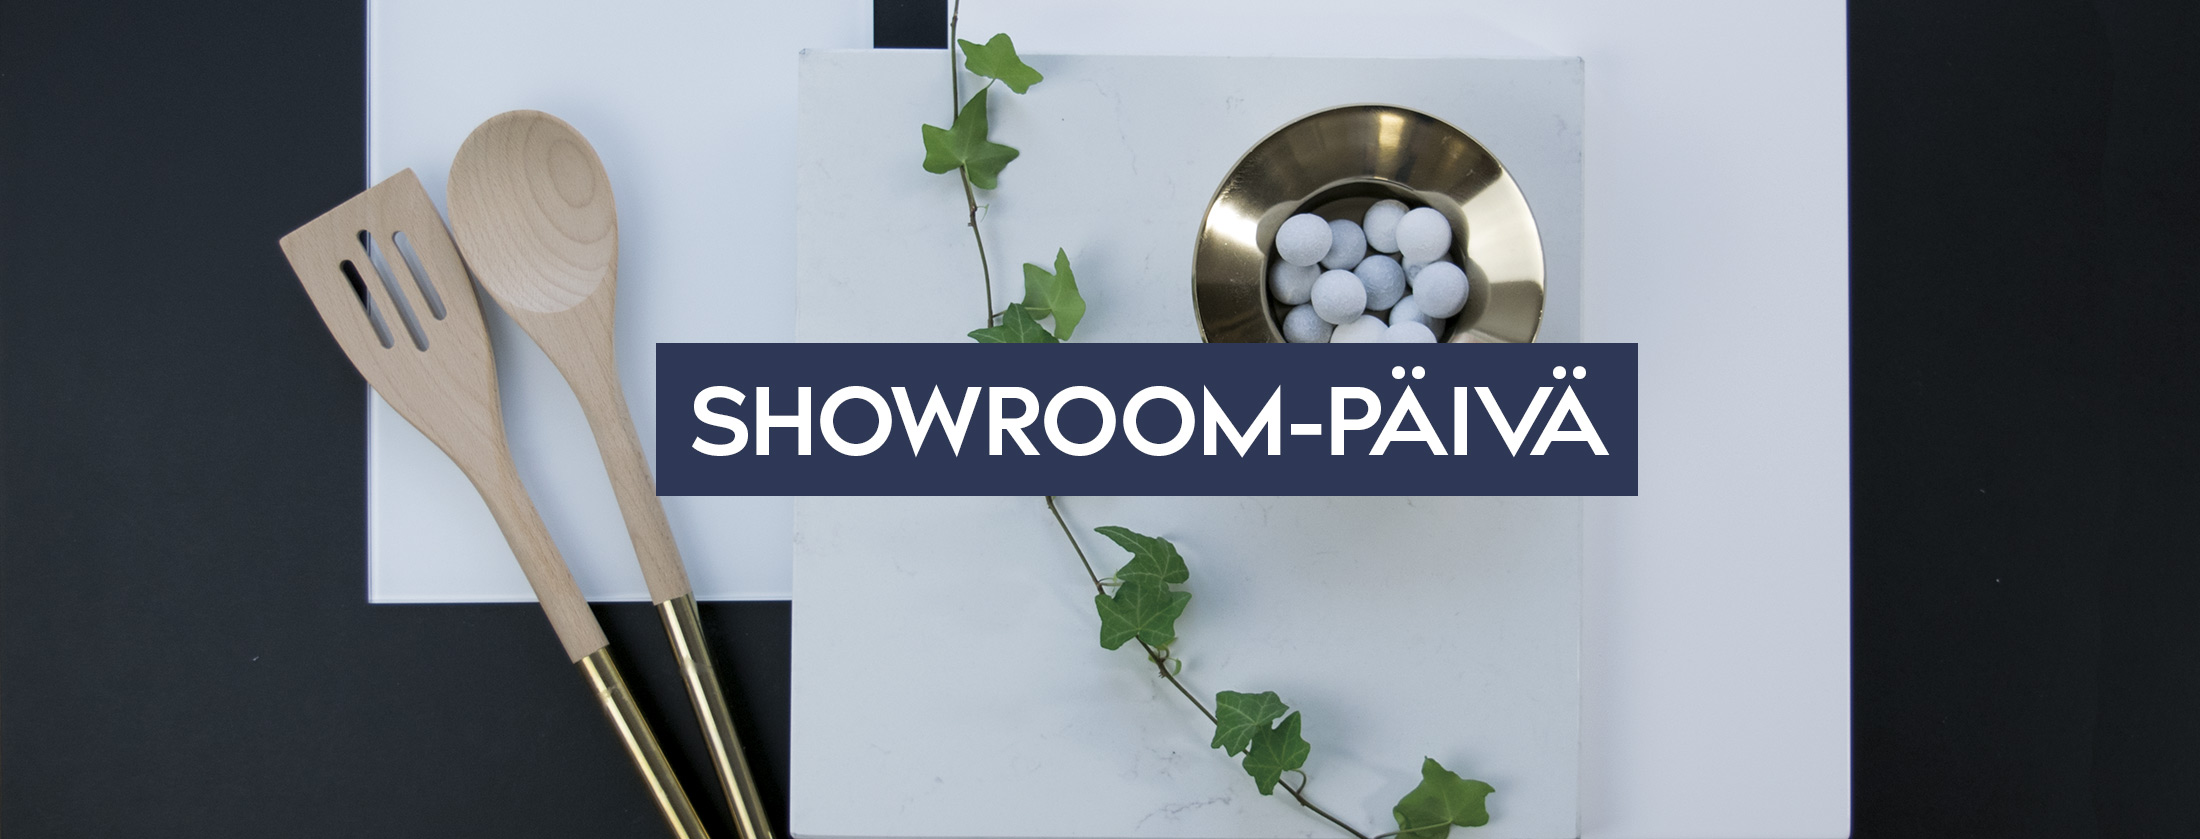 Showroom-avoinna